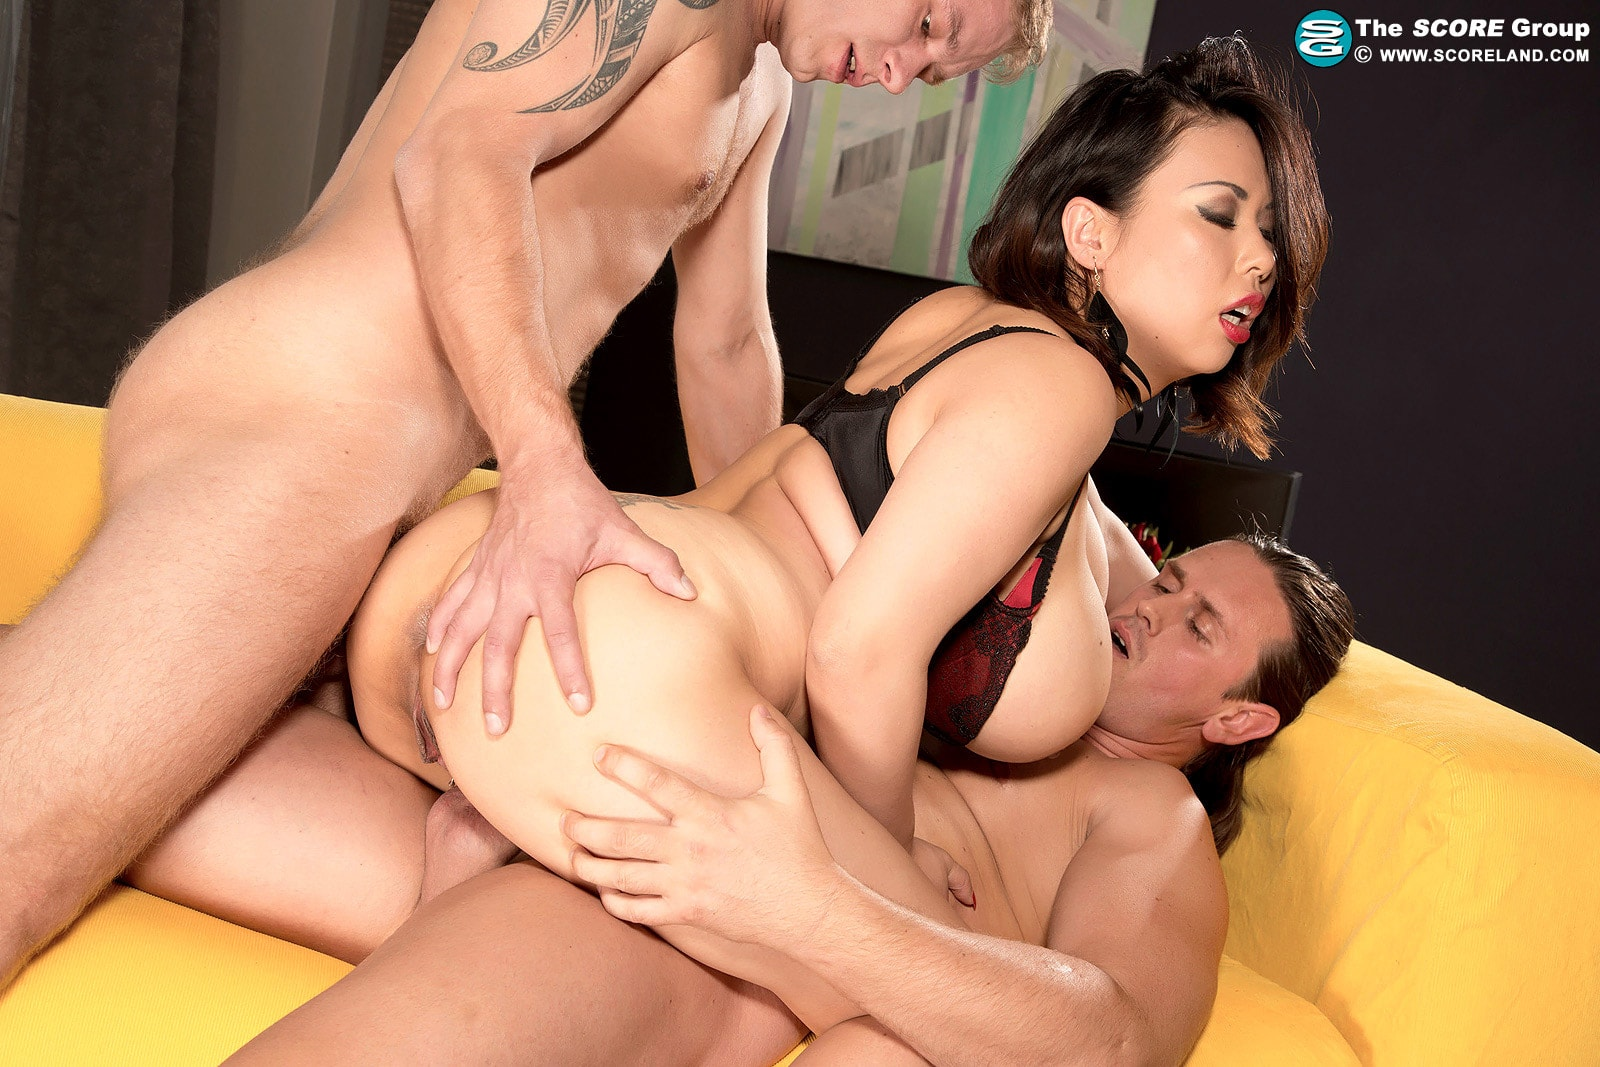 Score 'Double Penetration' starring Tigerr Benson (Photo 14)